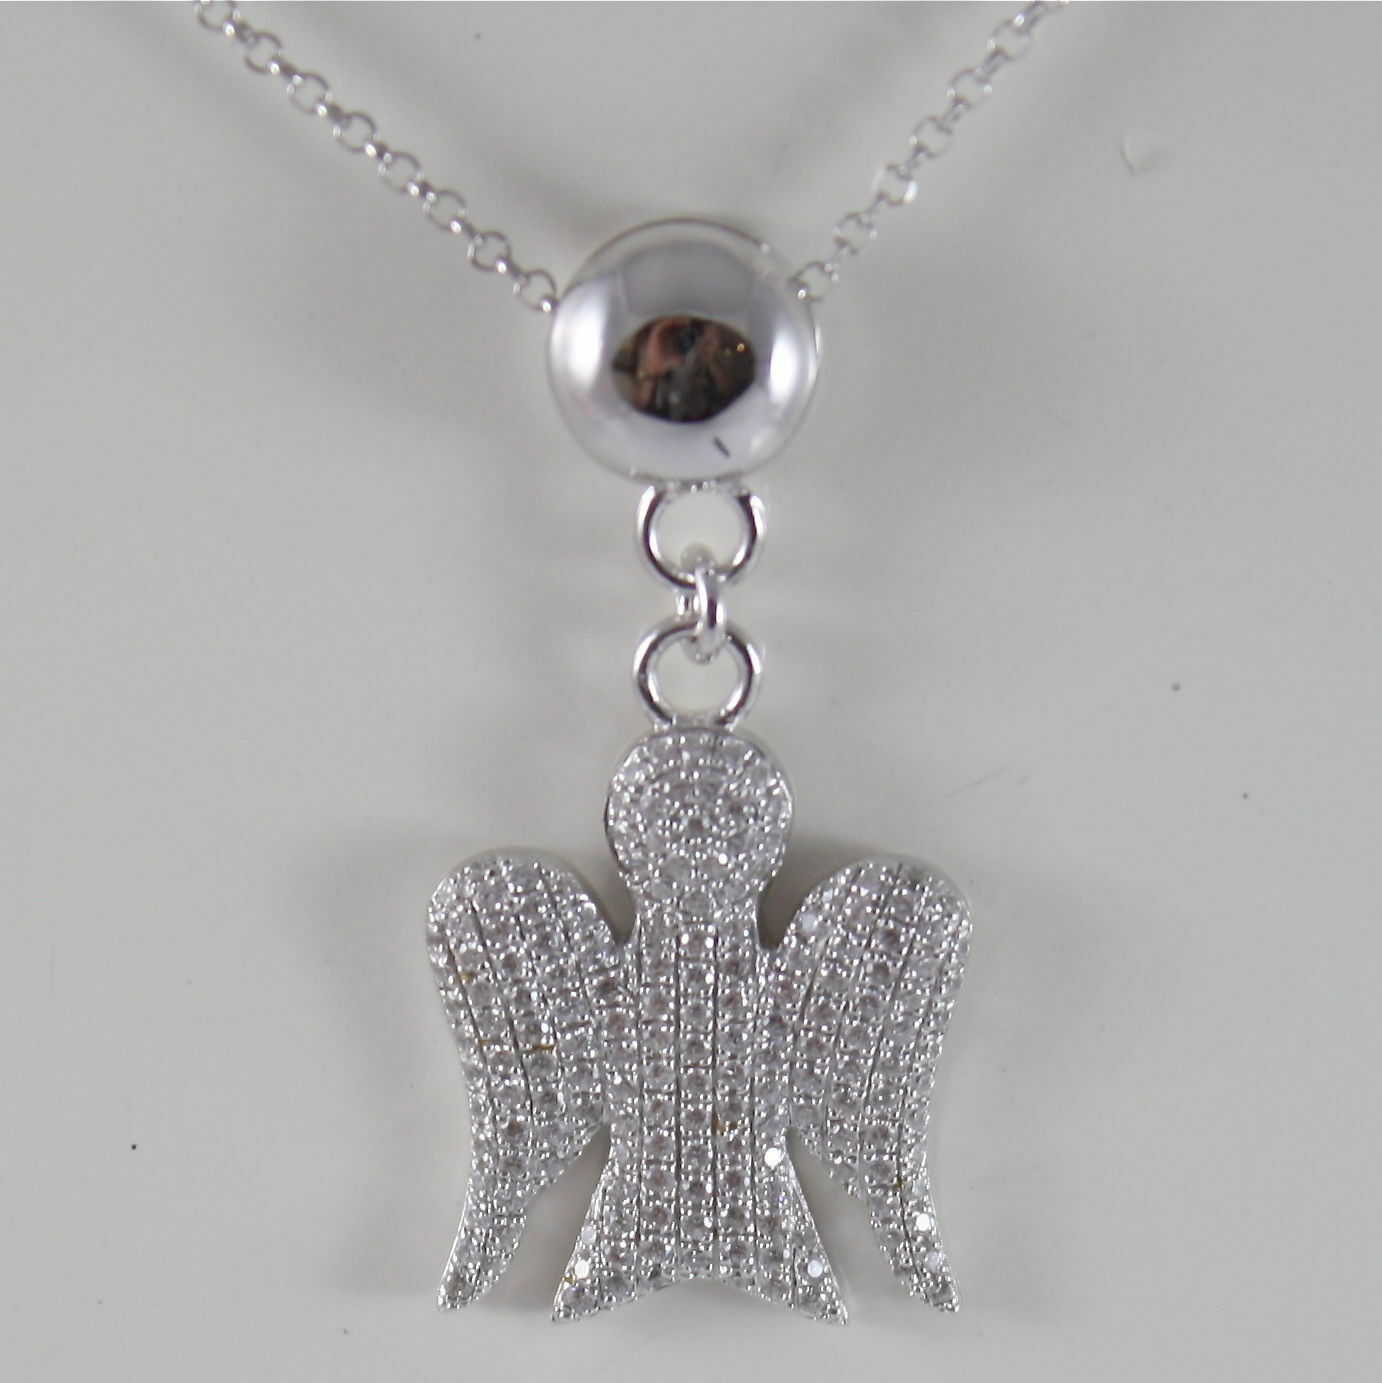 925 SILVER NECKLACE WITH ANGEL PENDANT GIA100 MADE IN ITALY BY ROBERTO GIANNOTTI